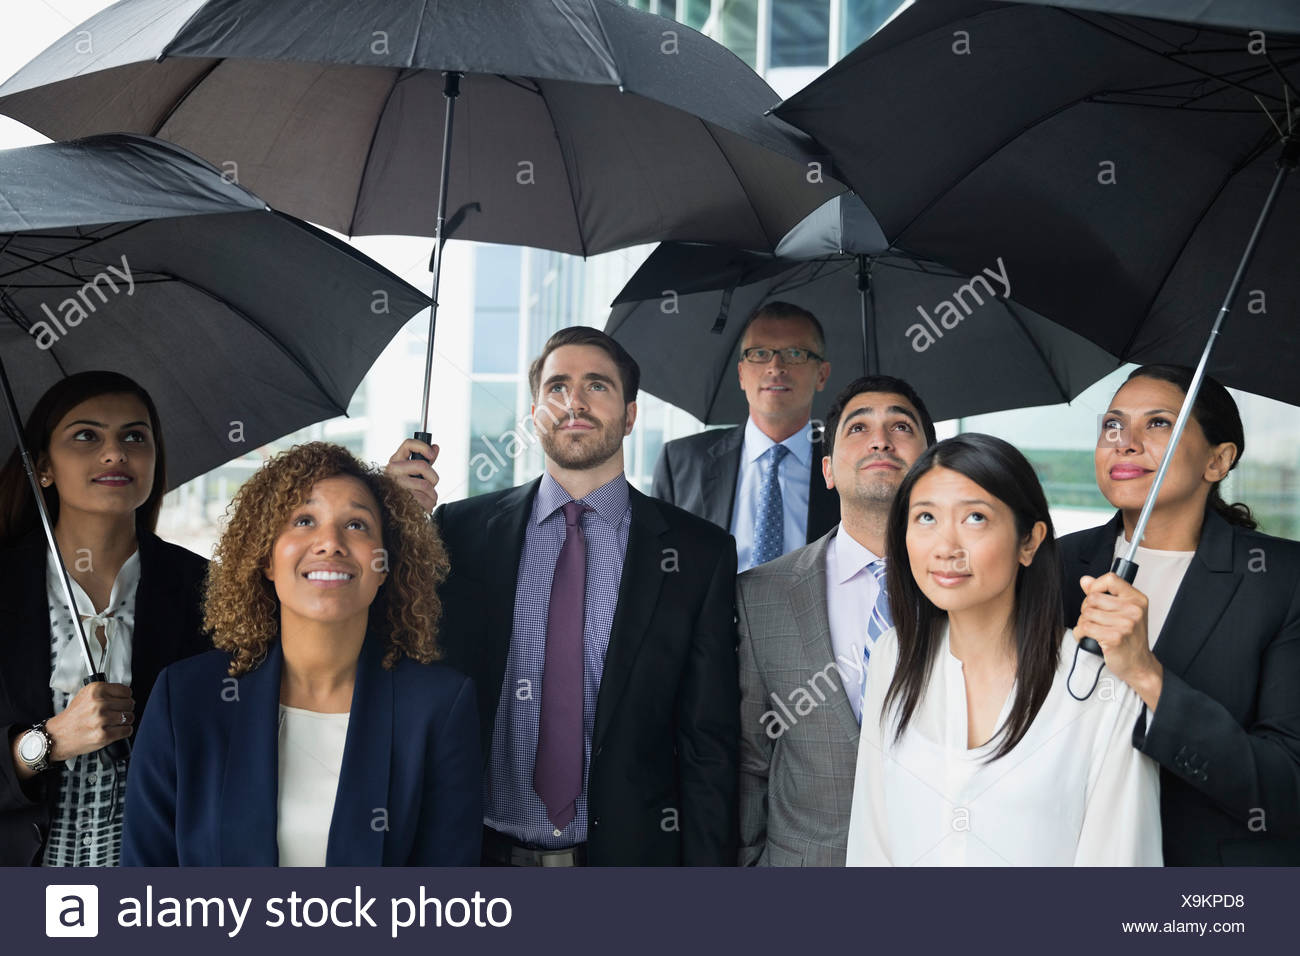 Business team with umbrellas looking up - Stock Image